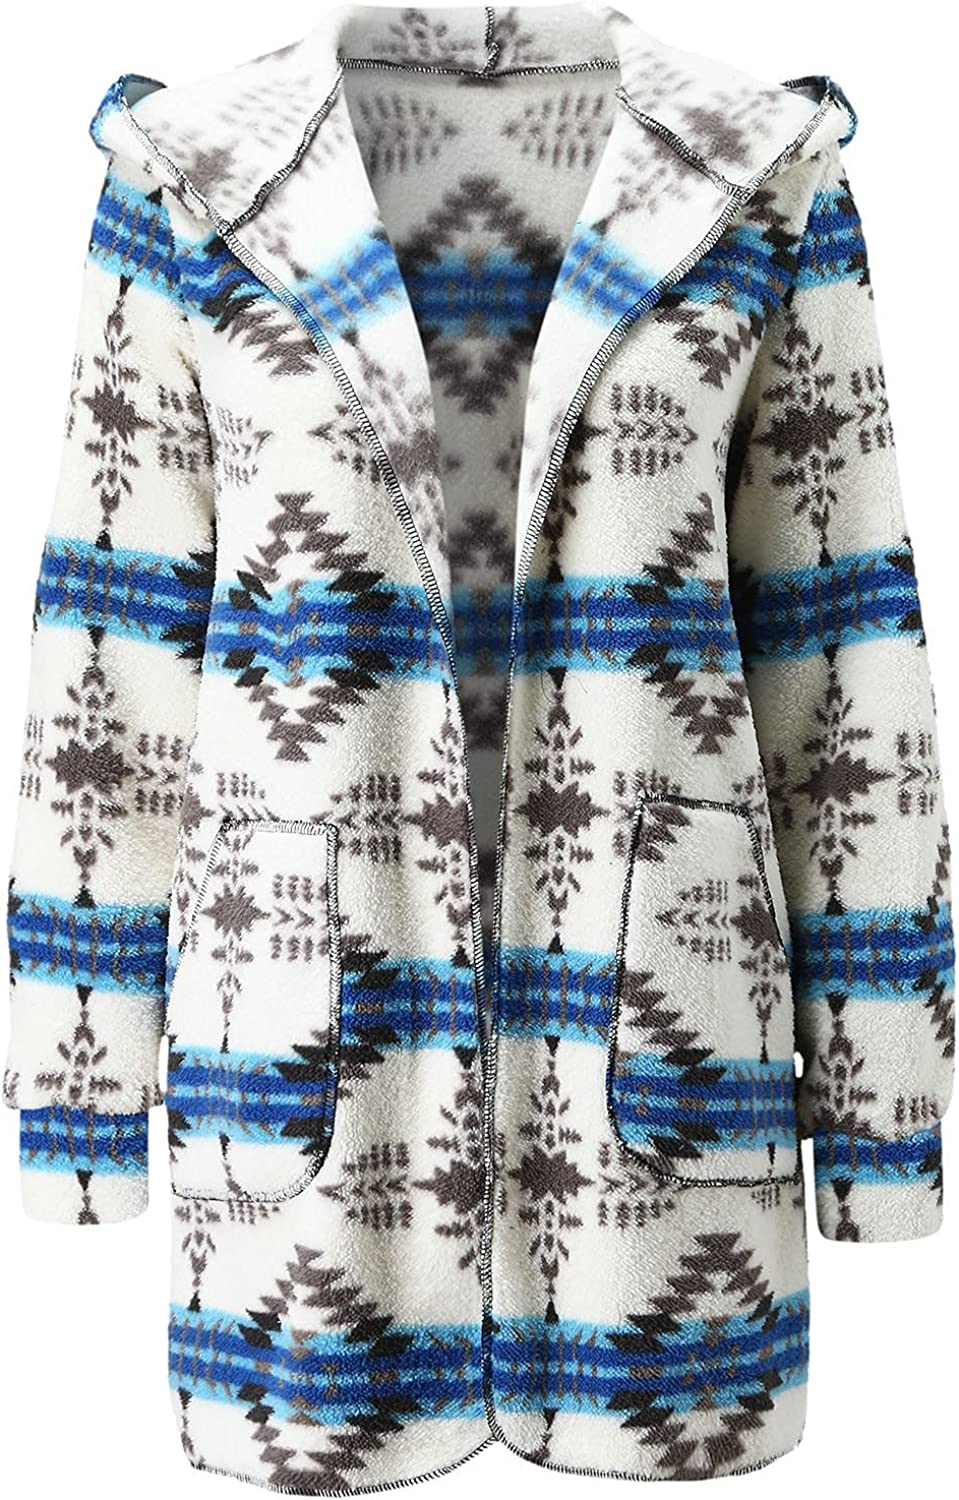 HDgTSA Women's Cardigan Long Sleeves Open Front Knitted Sweater Cardigan Coat Outwear with Pockets